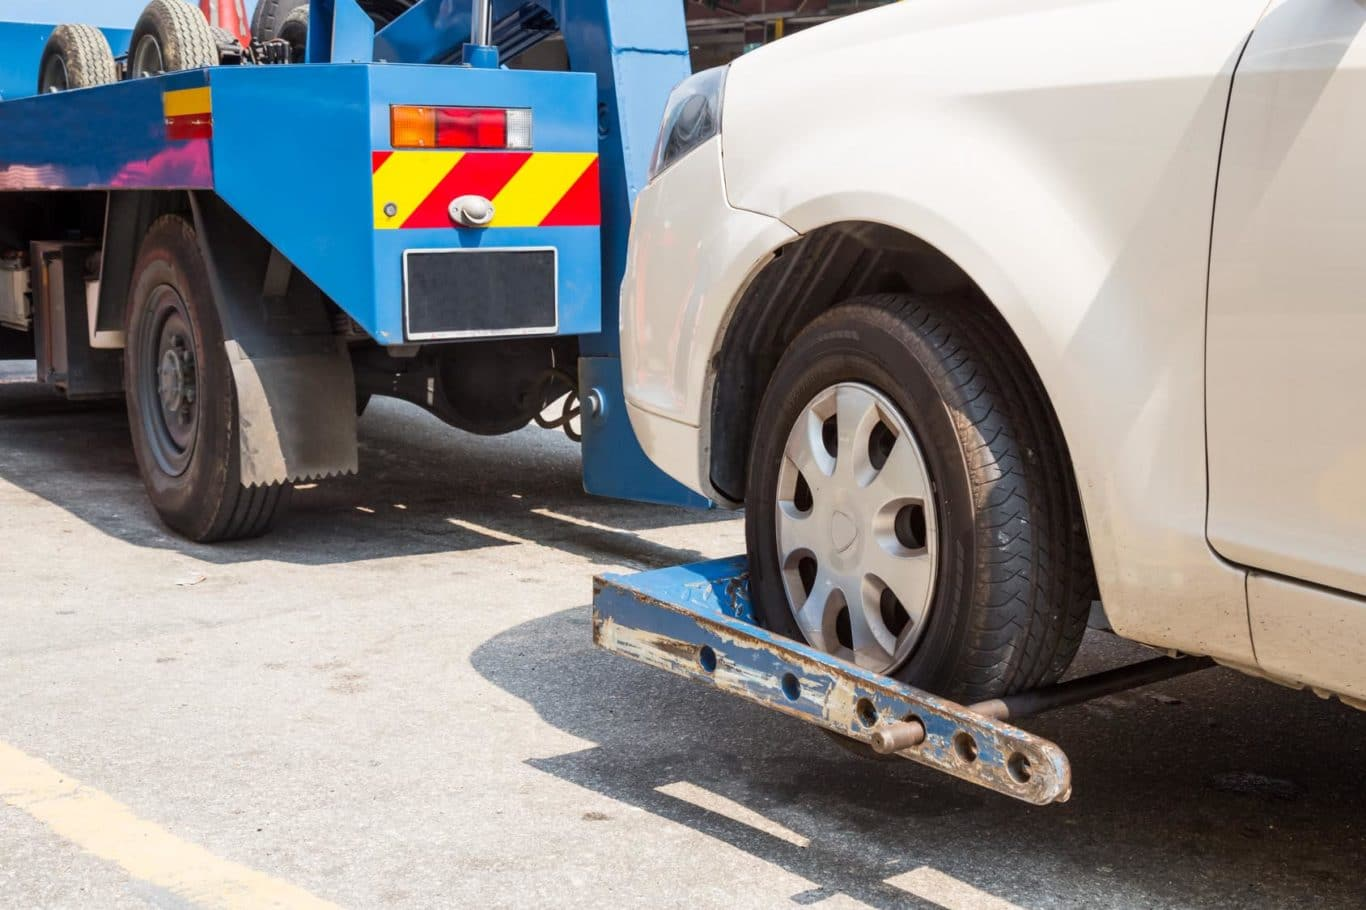 Kilmacanogue expert Car Towing services